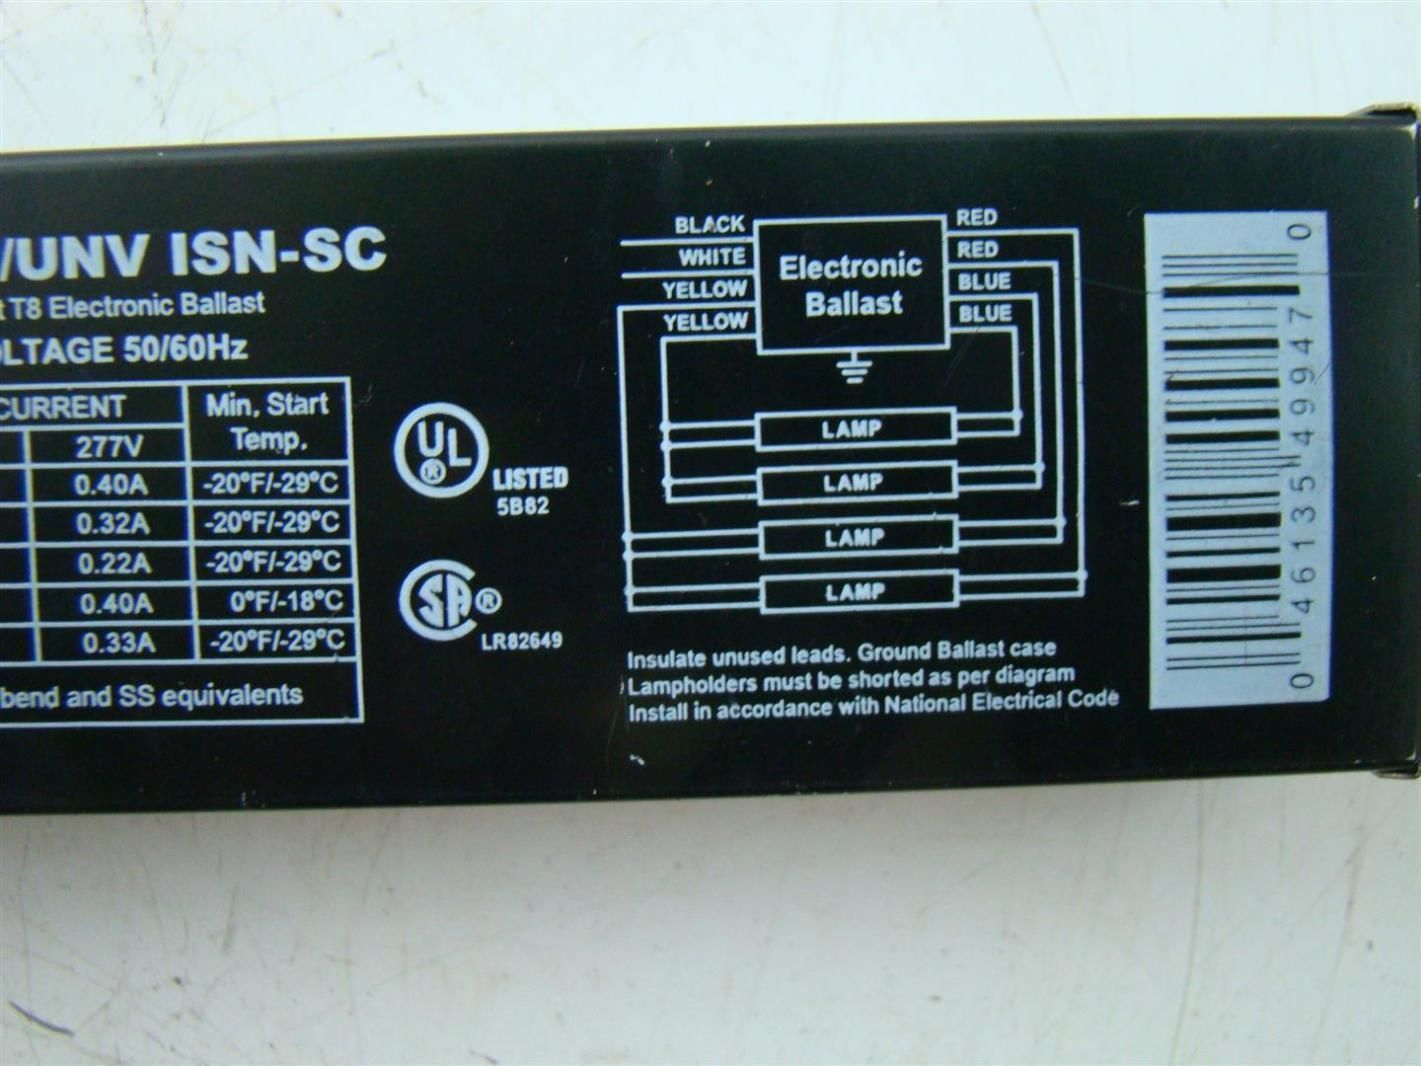 afp130 sylvania quicktronict8 ballast 120 277v qtp 4x32t8 unv isn sc 10 sylvania quicktronict8 ballast 120 277v qtp 4x32t8 unv isn sc sylvania qtp 4x32t8/unv isn-sc wiring diagram at fashall.co